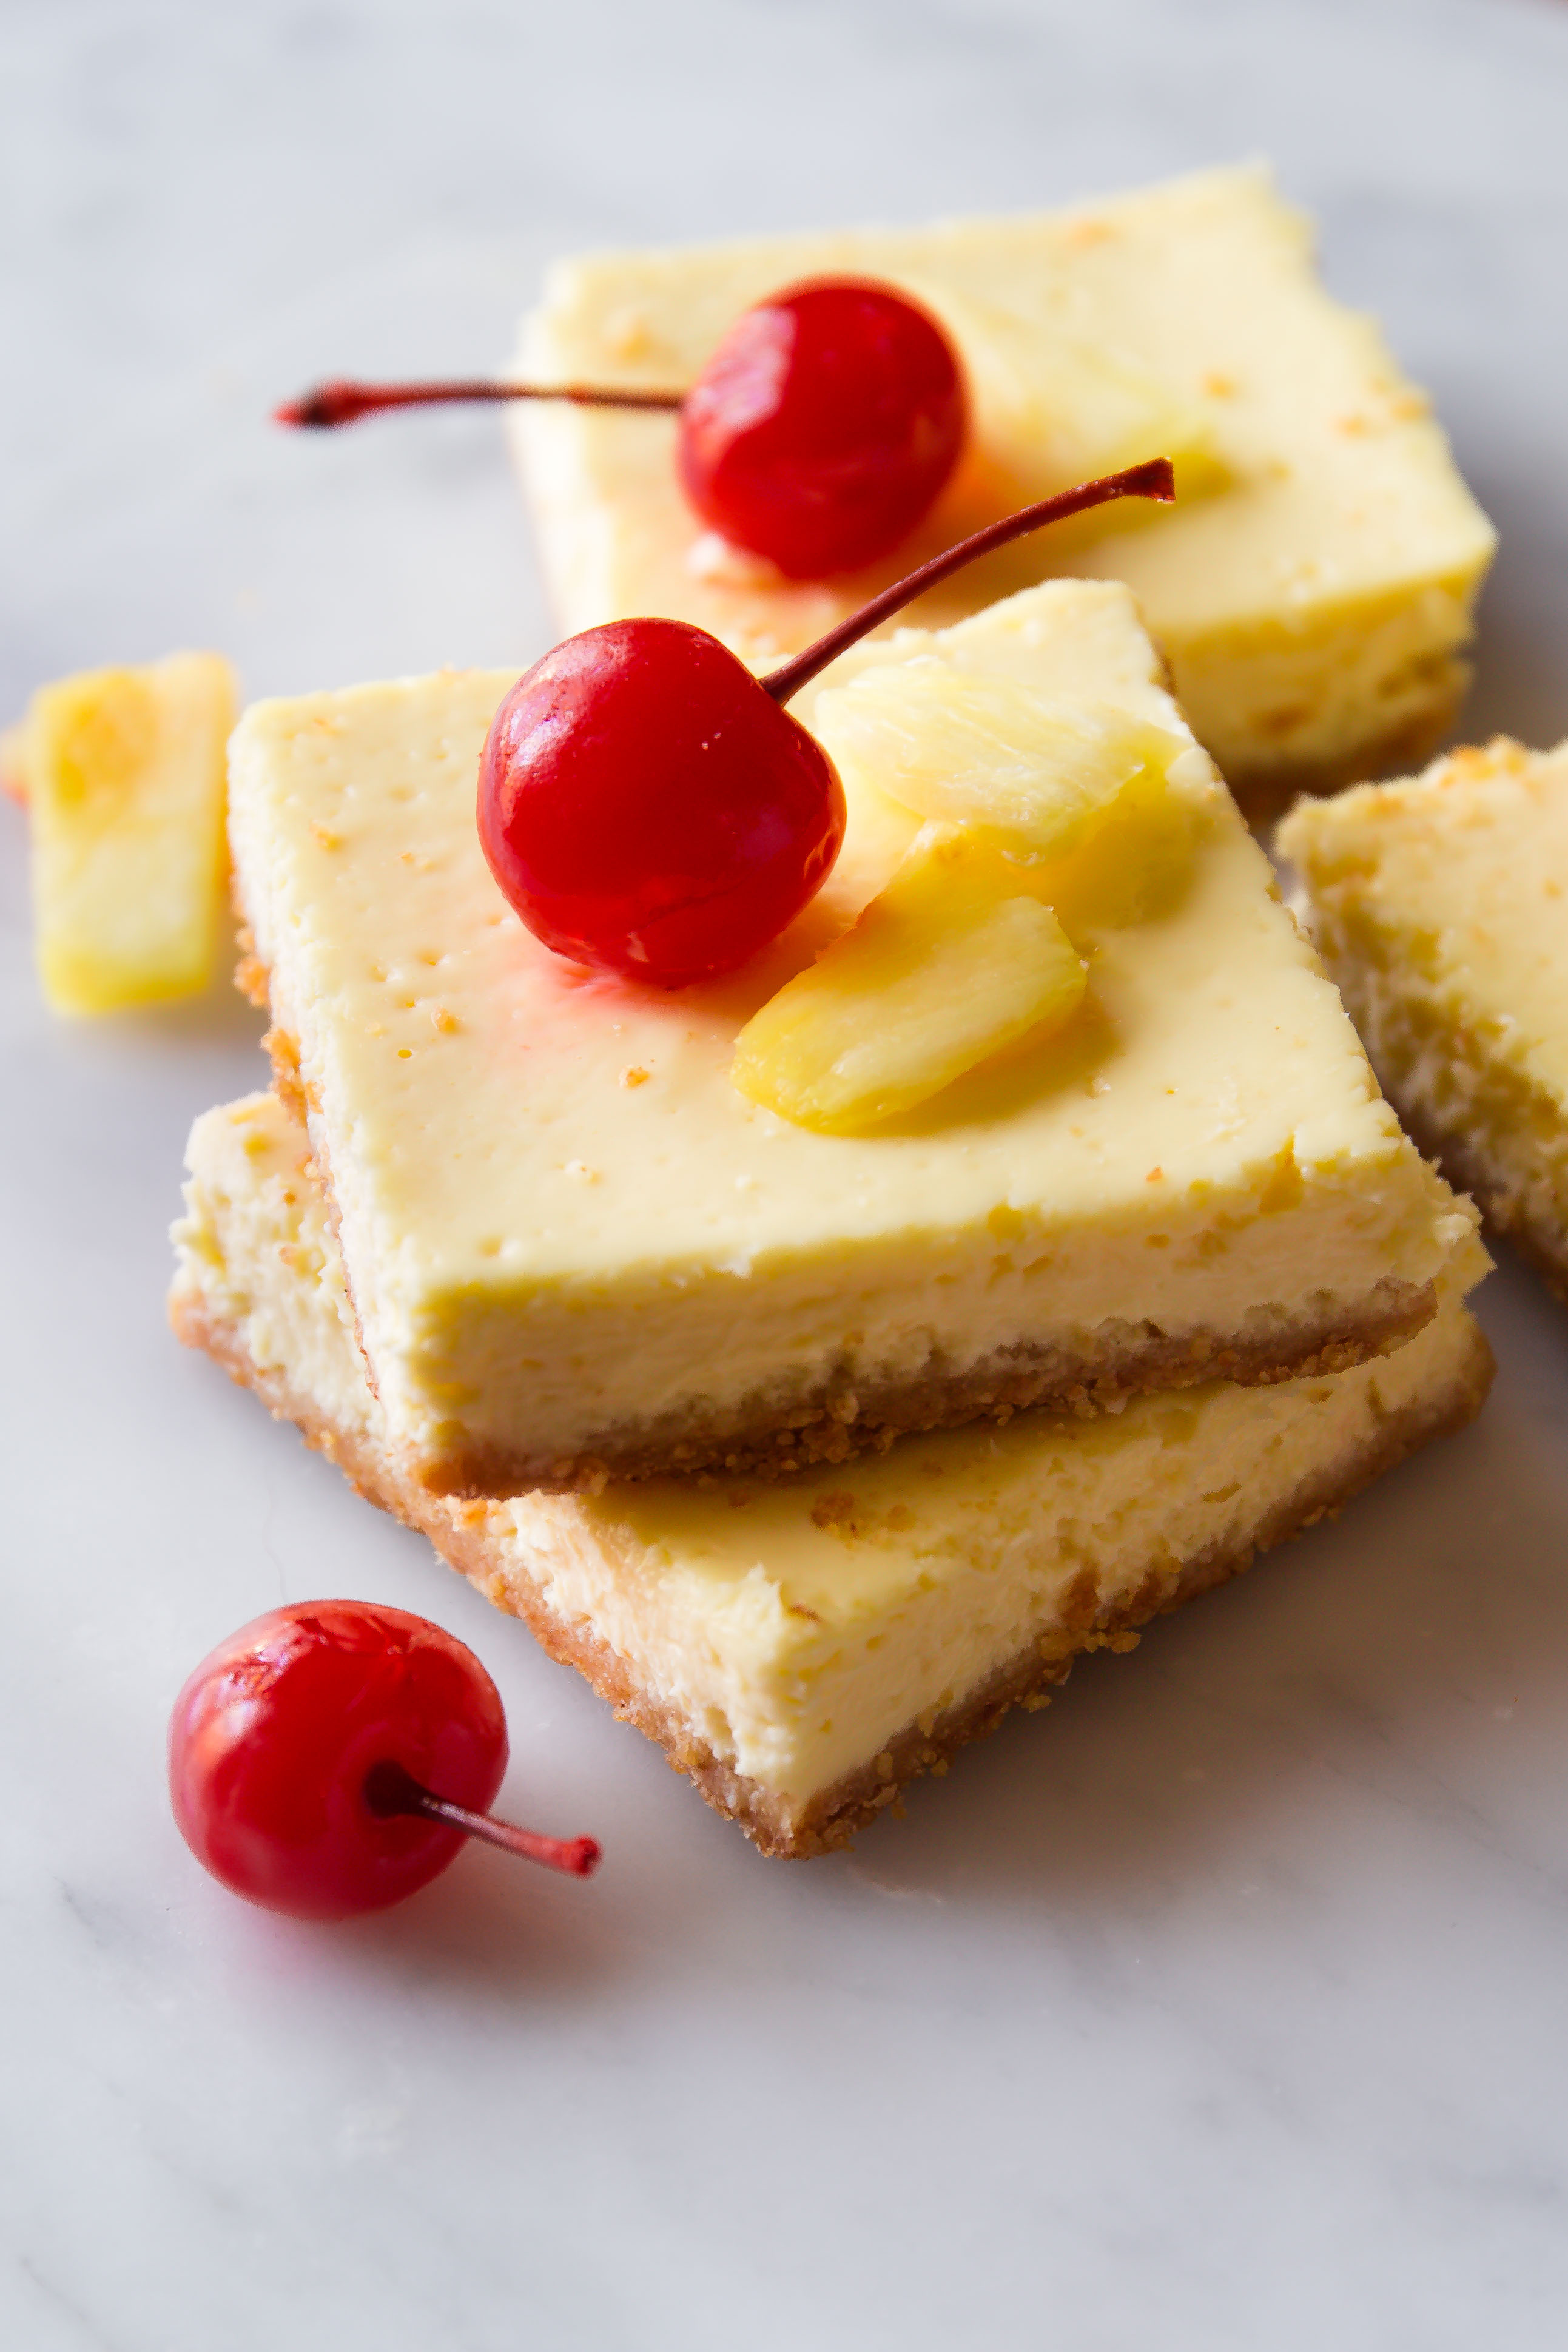 pineapple dessert desserts delish recipes recipe bars cheesecake summer healthy easy light skinny sweets 4th july taste these deserts homemade